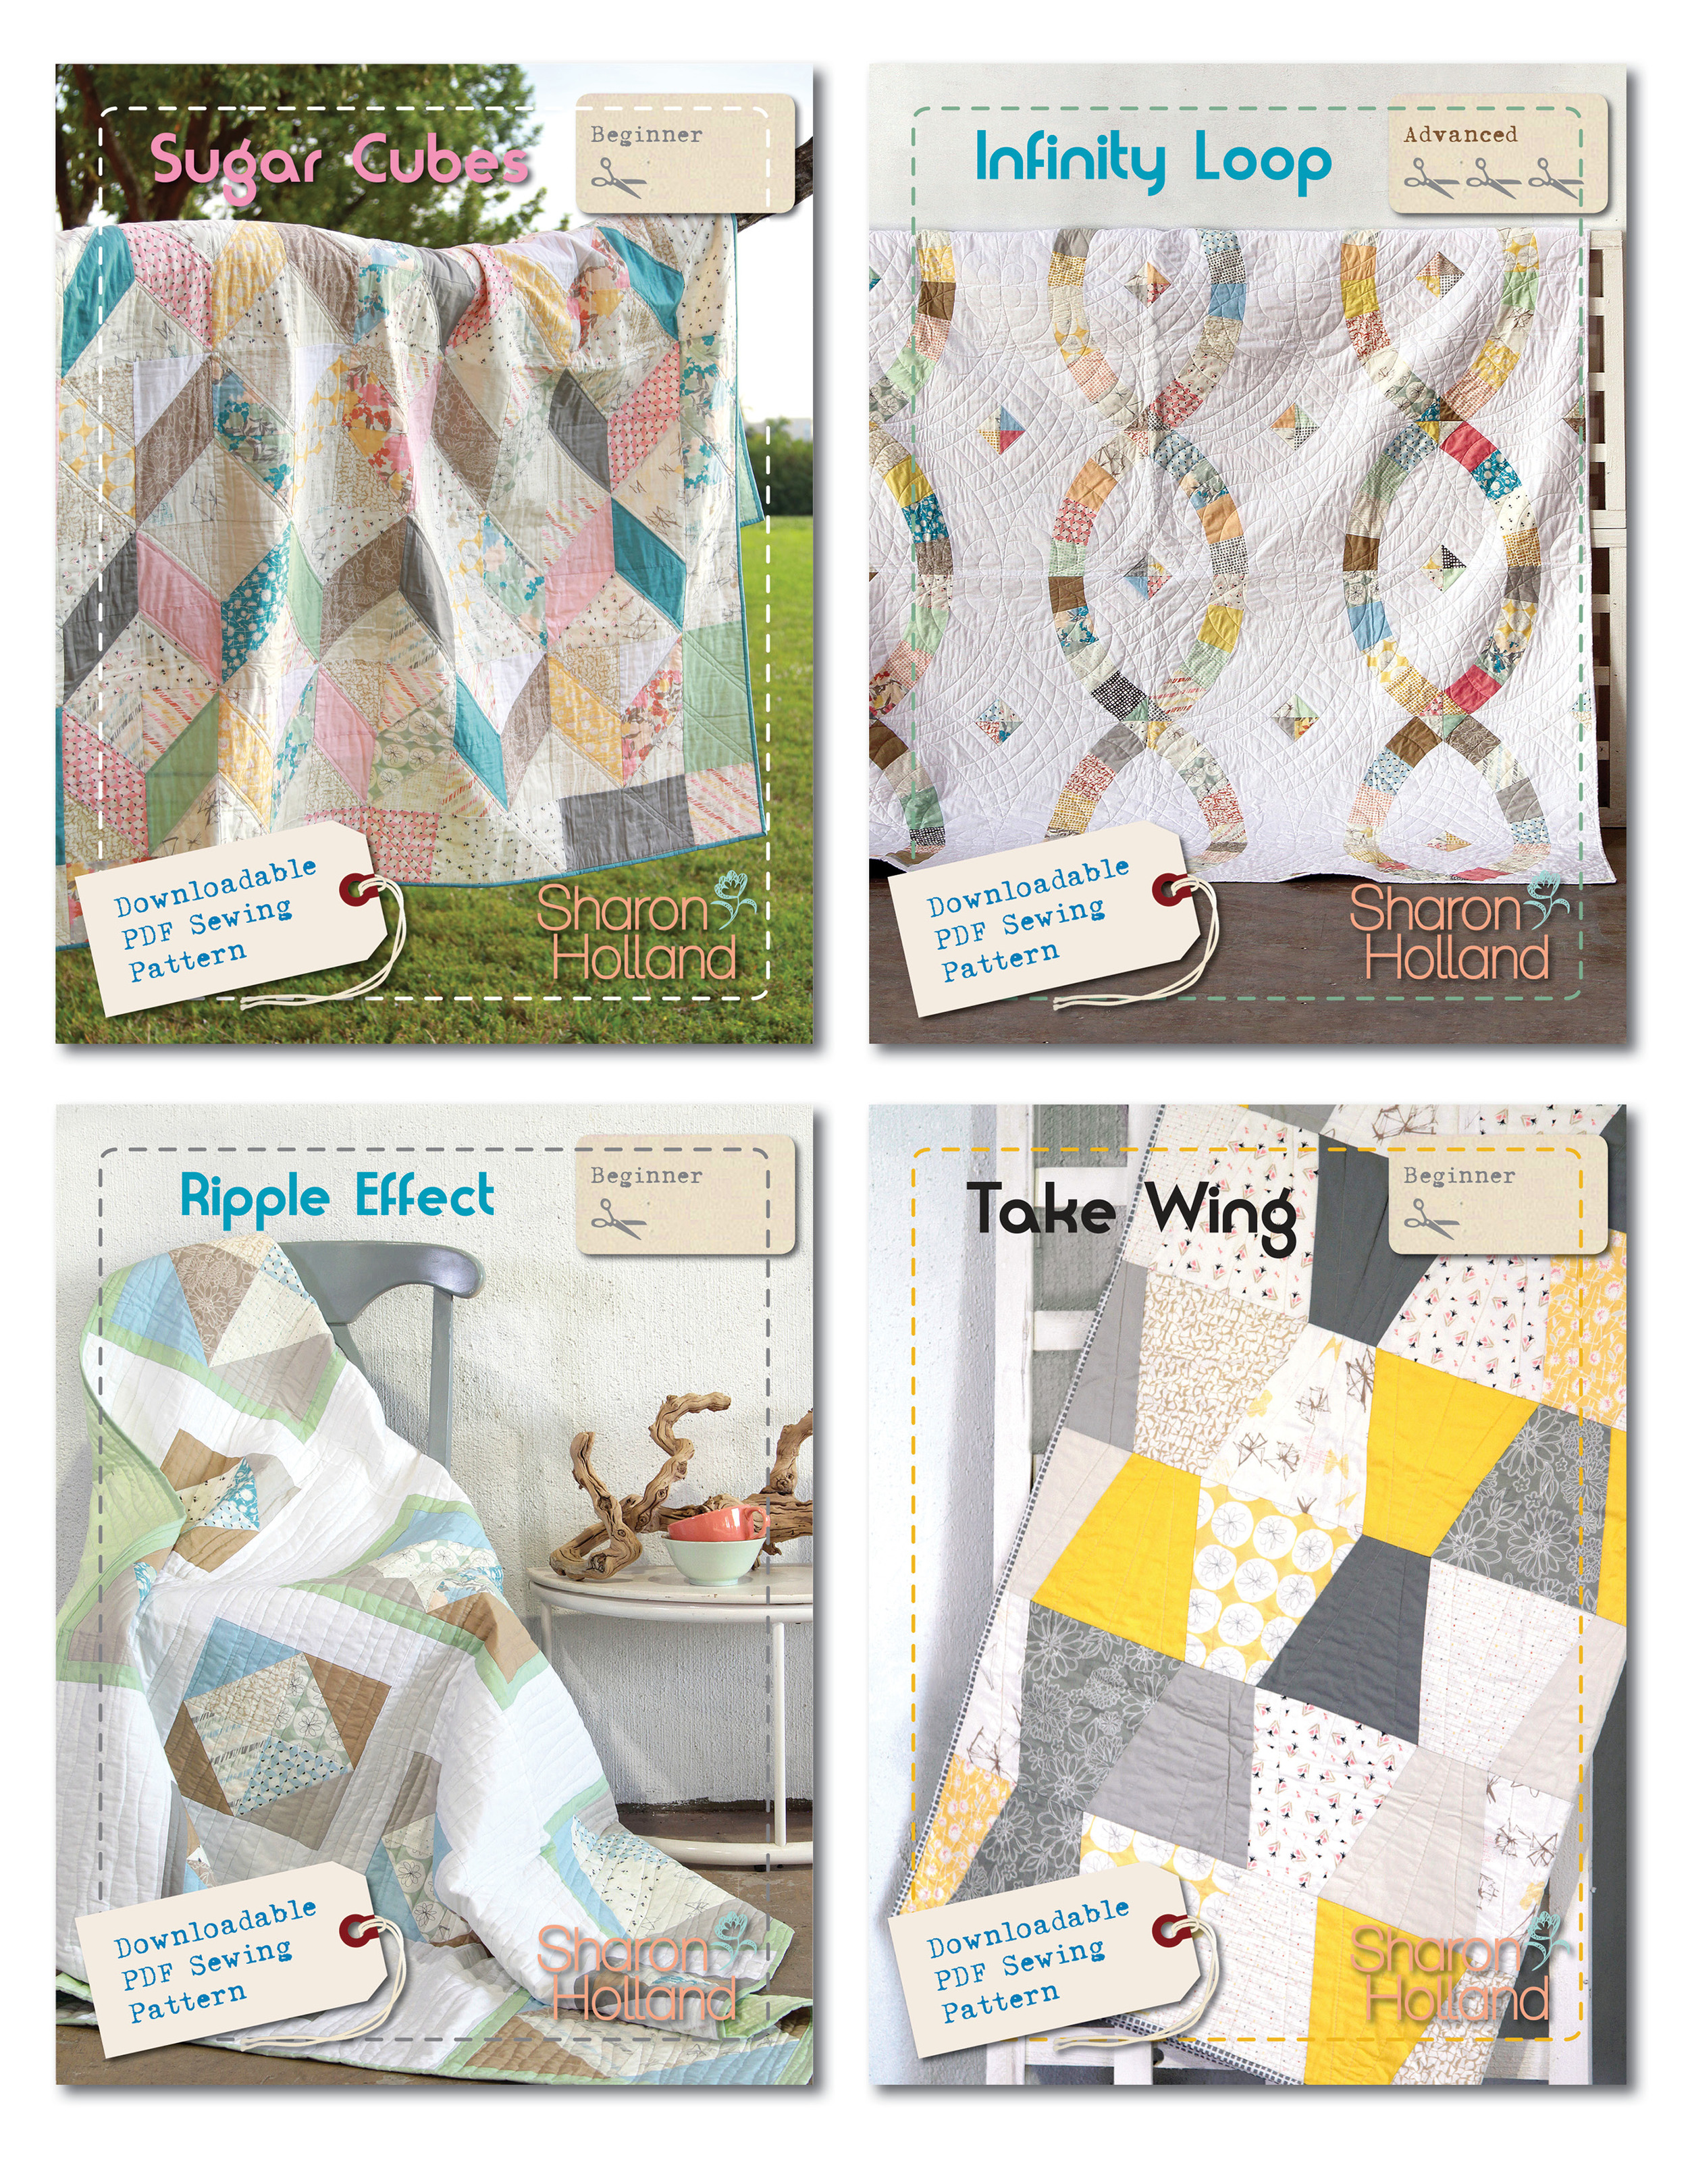 New Patterns from Sharon Holland Designs.jpg